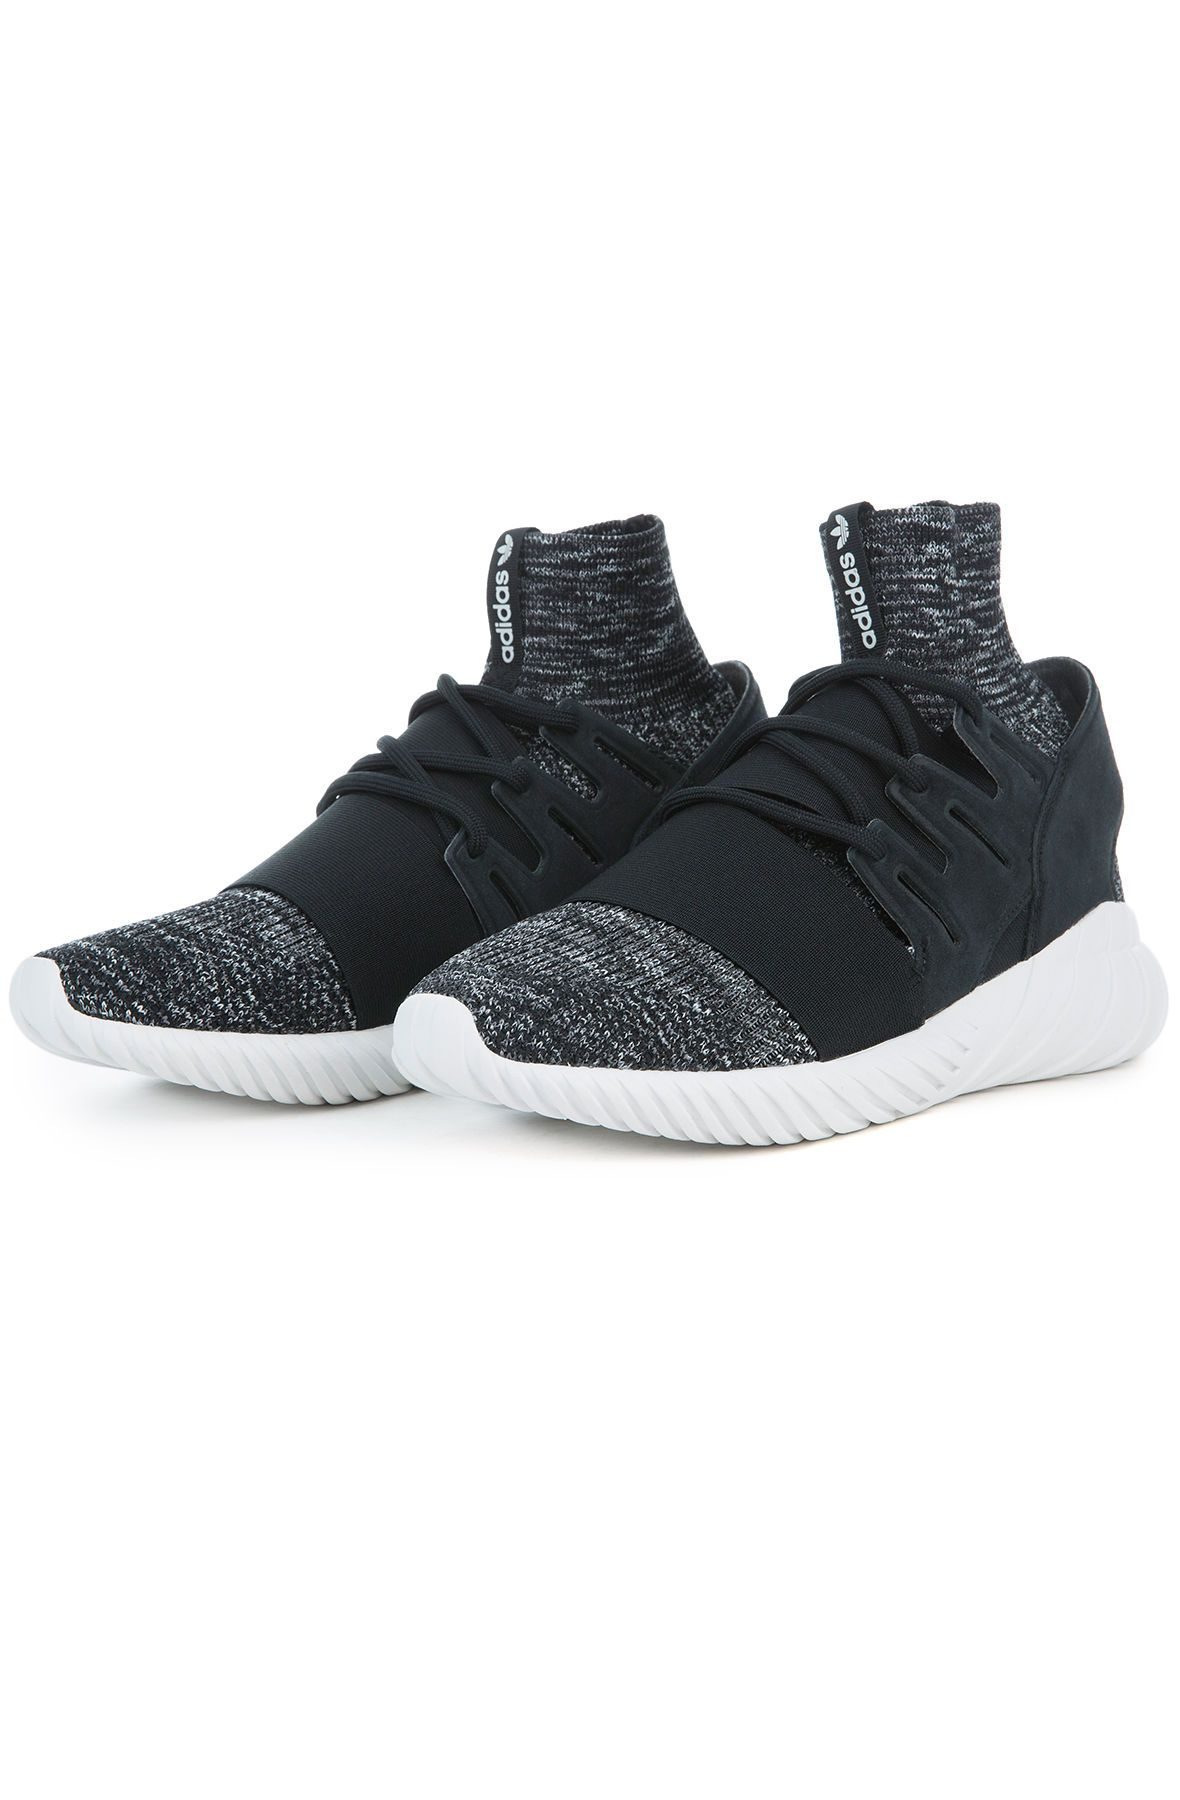 On Feet Photos of the Cheap Adidas Tubular Doom Primeknit